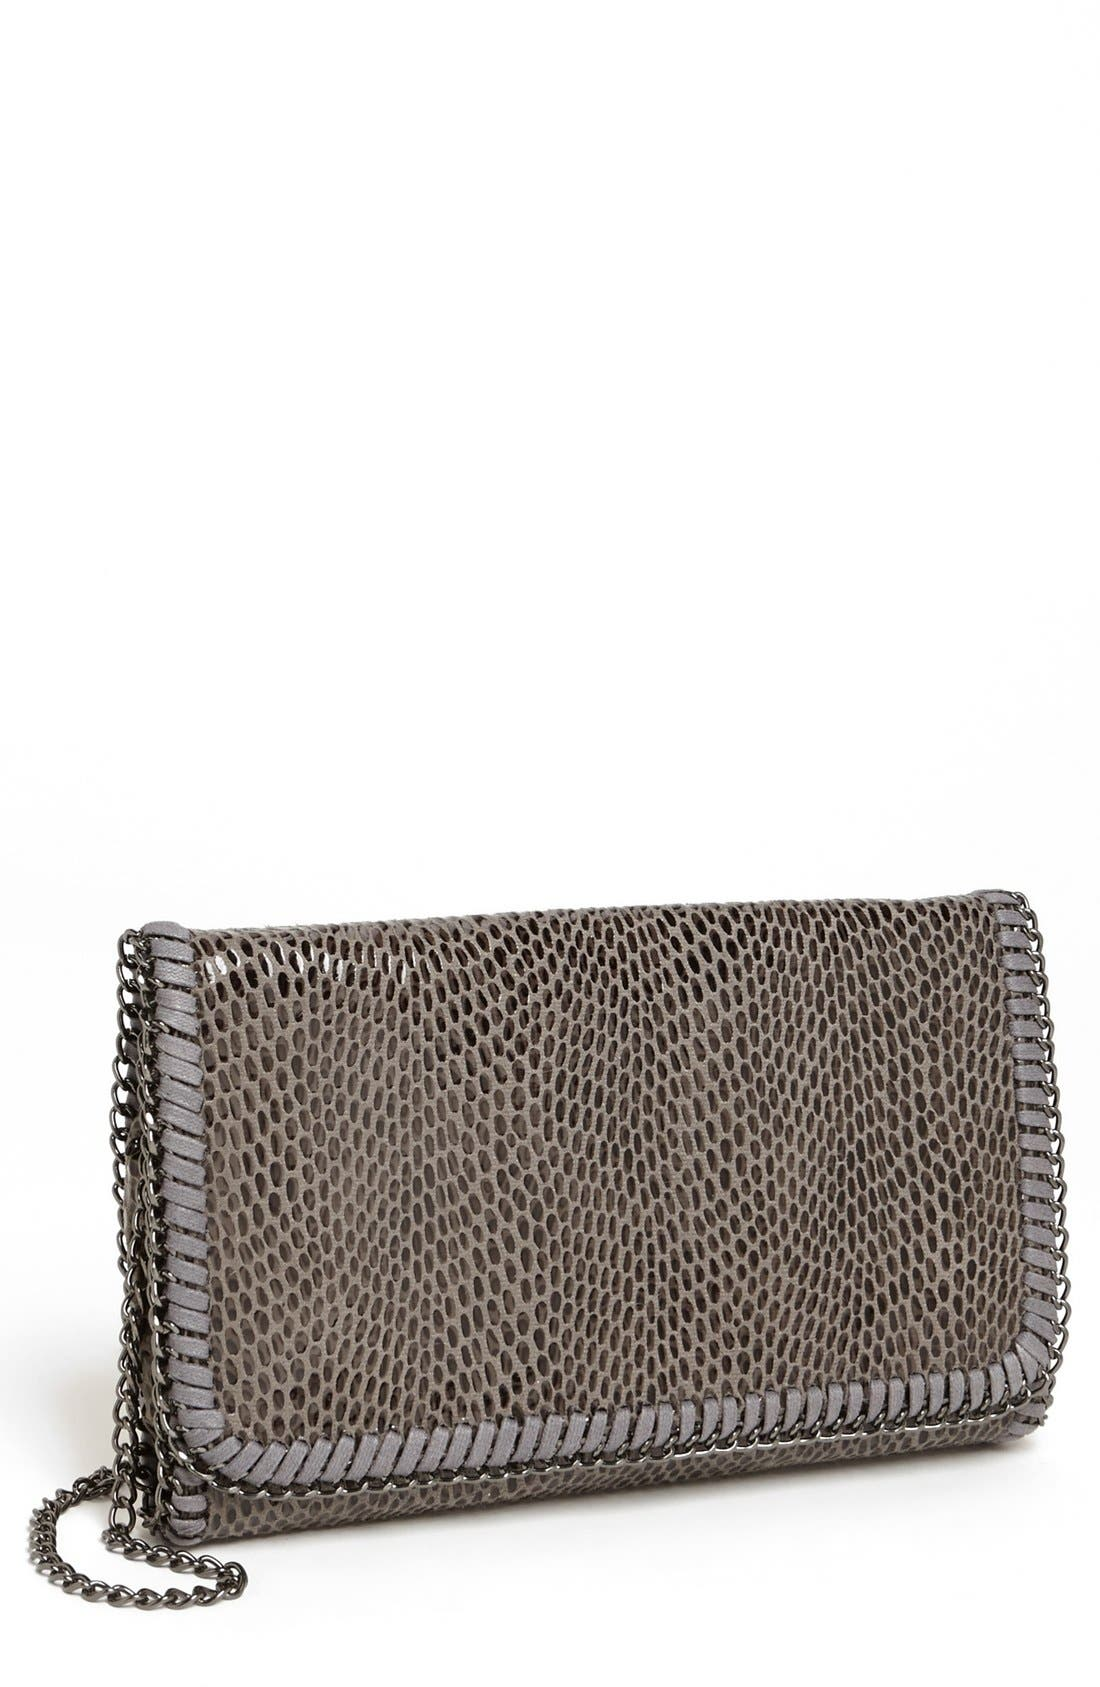 Main Image - Tarnish Snake Chain Crossbody Clutch